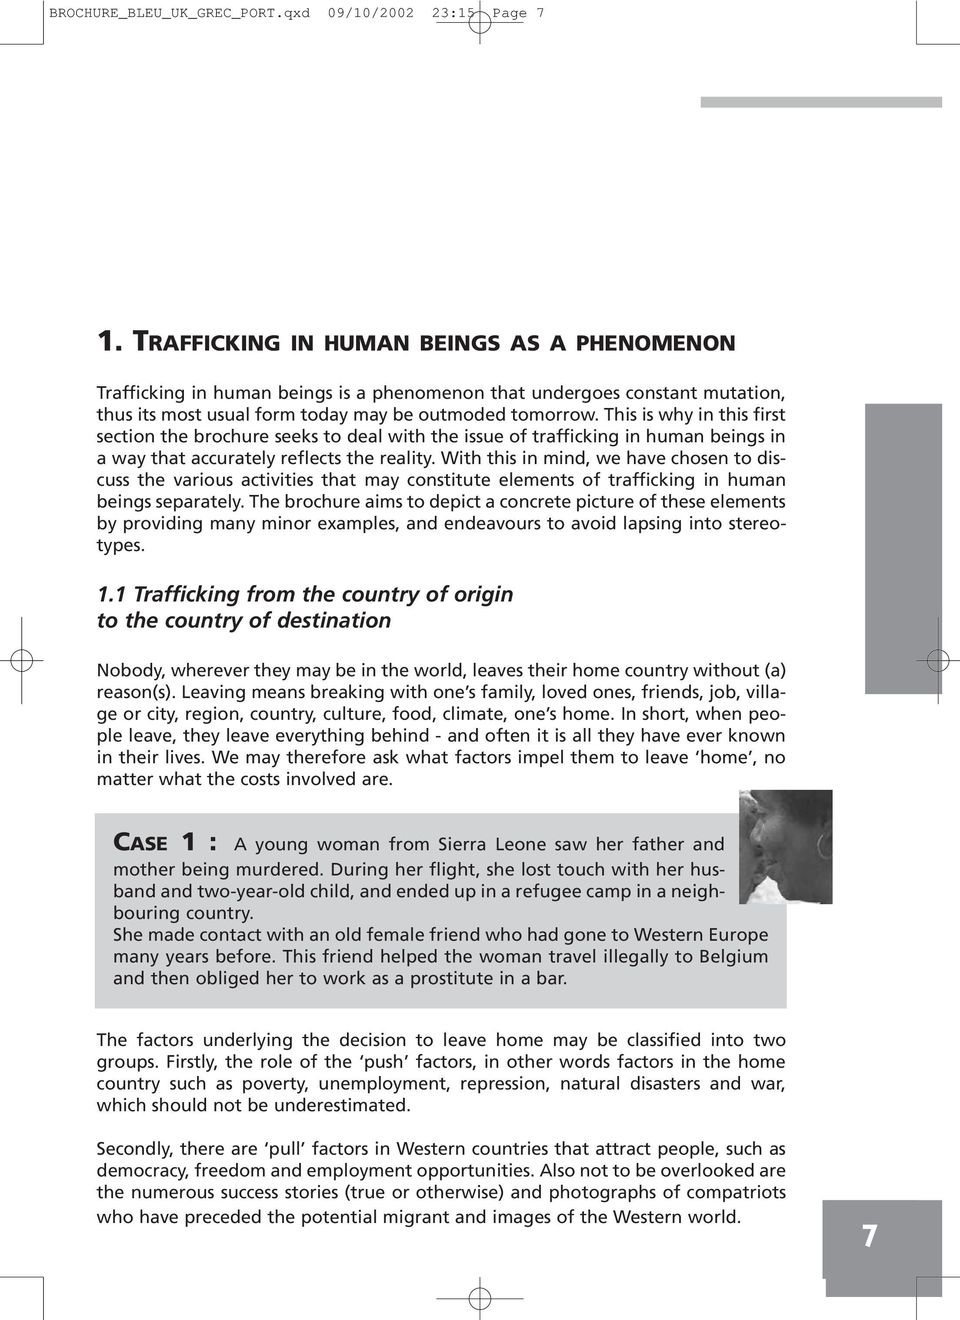 This is why in this first section the brochure seeks to deal with the issue of trafficking in human beings in a way that accurately reflects the reality.